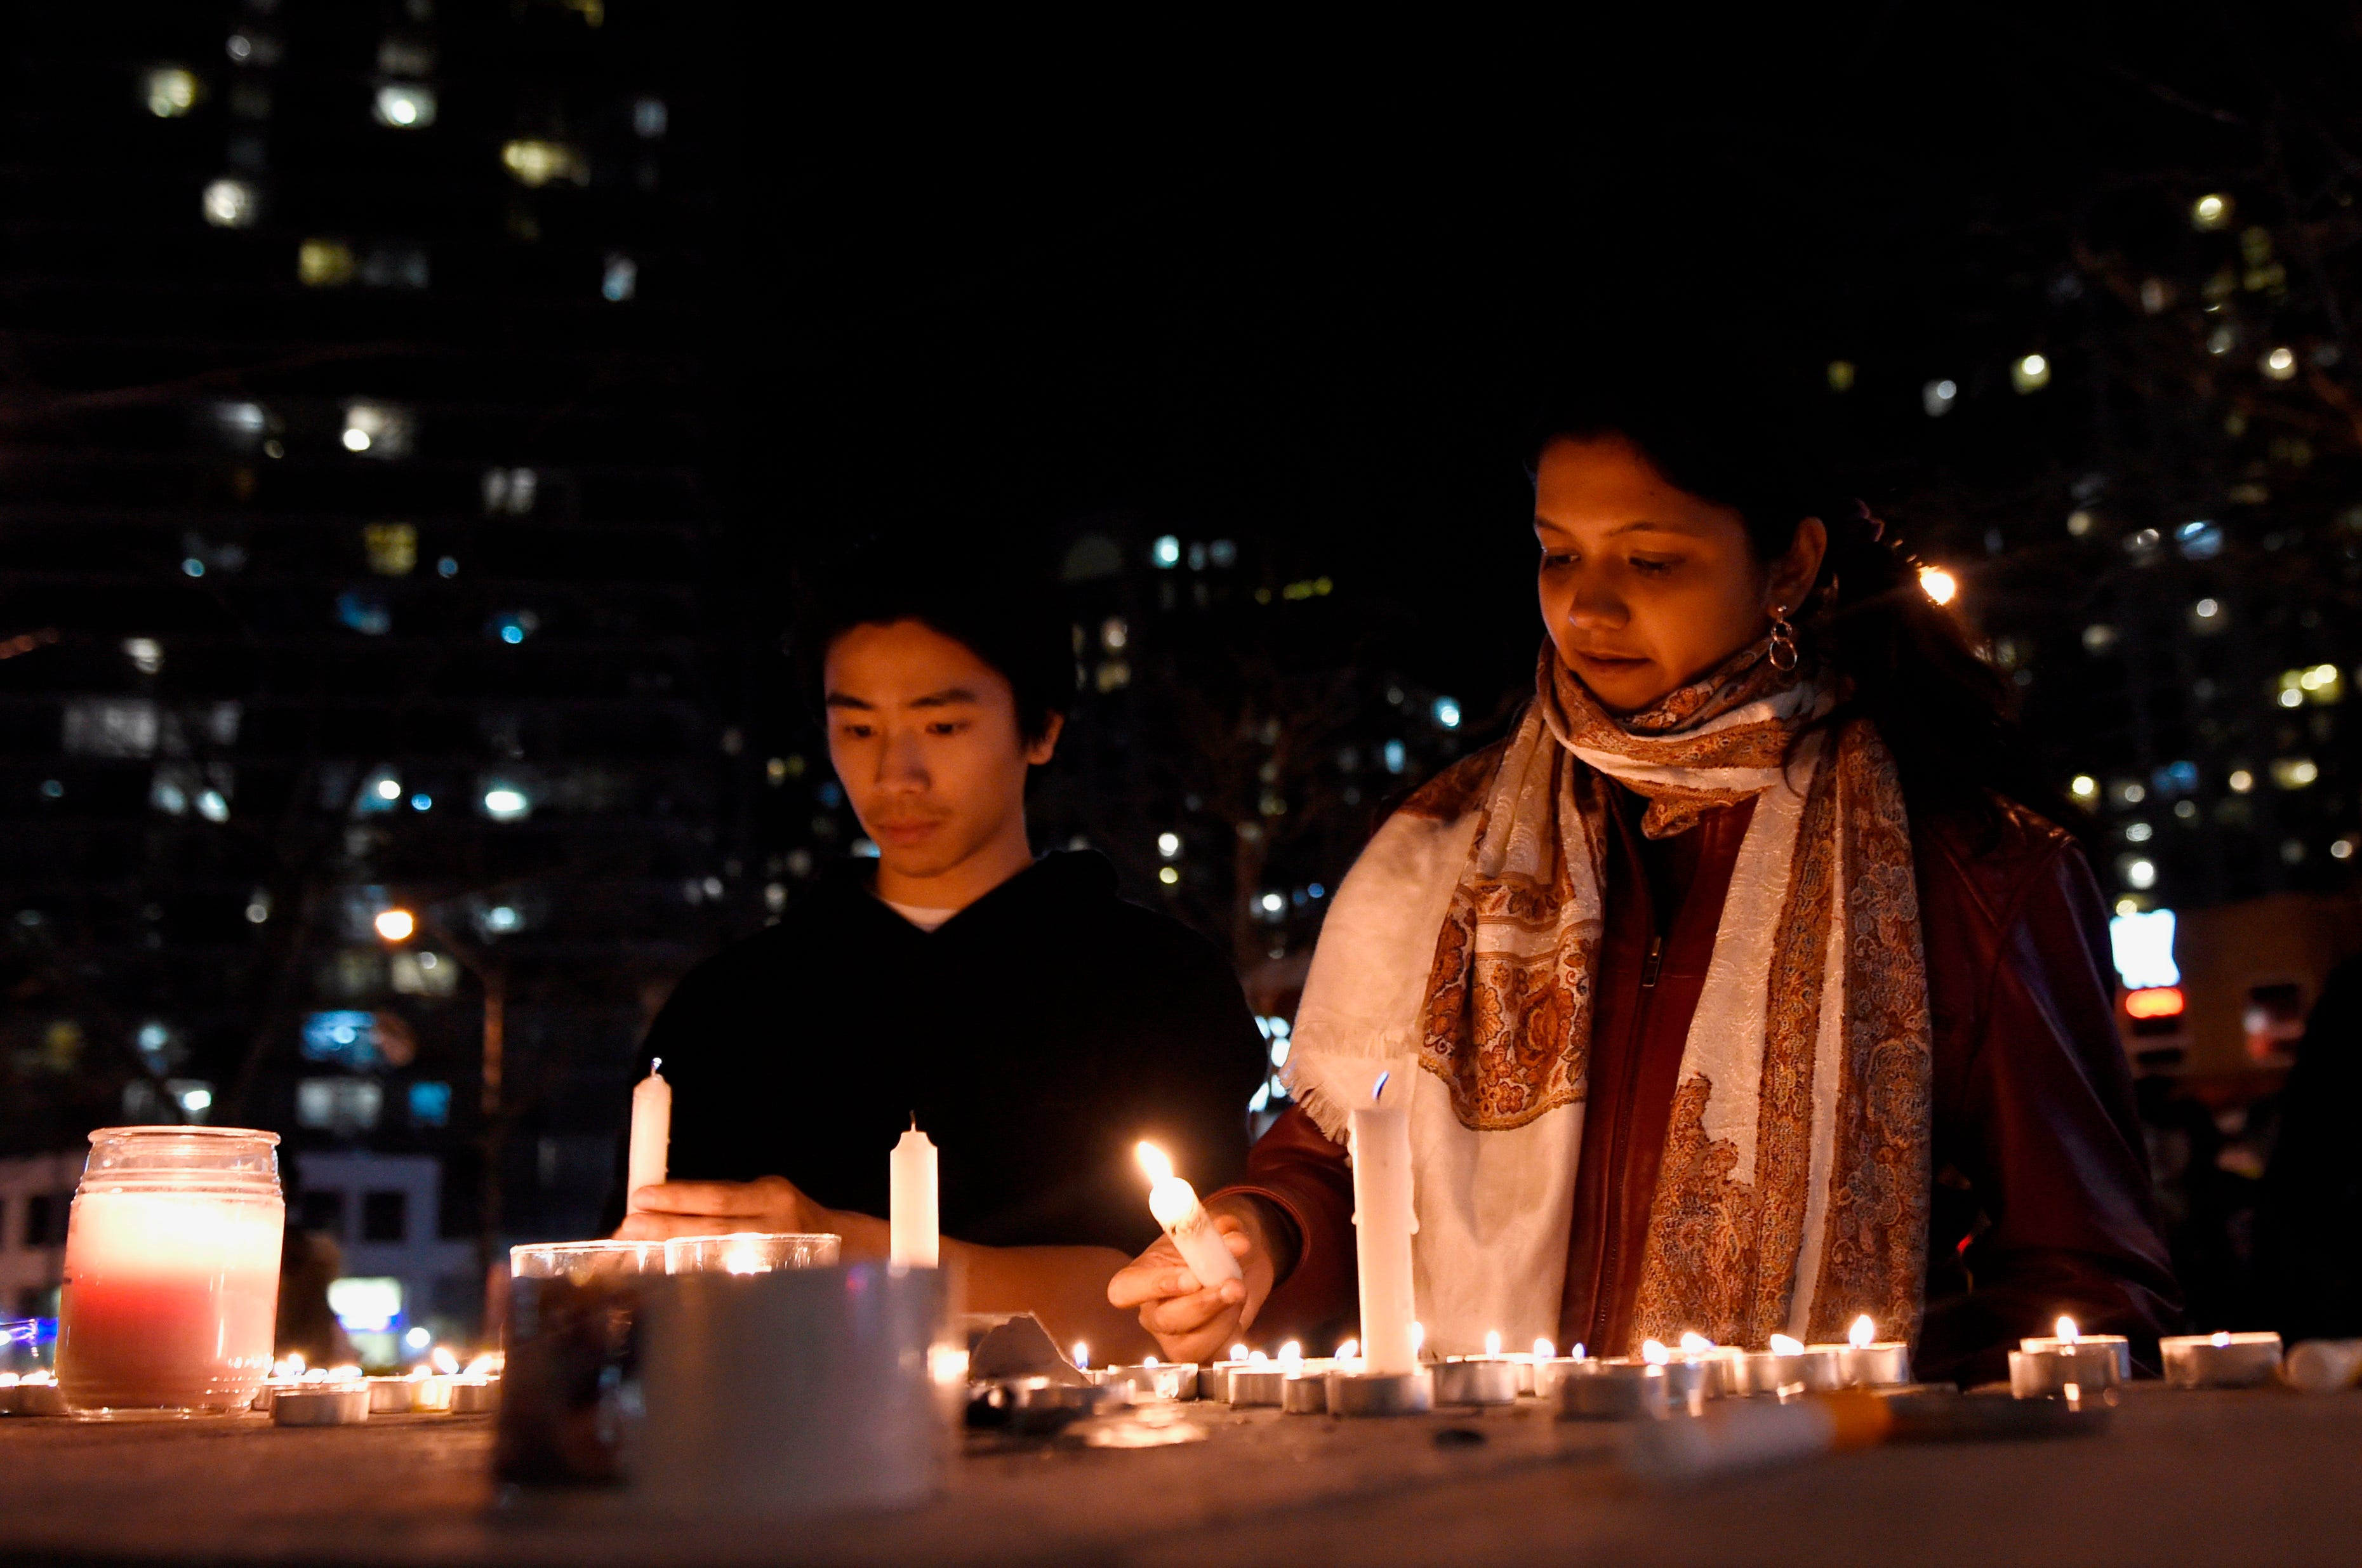 After Toronto van attack, Canadians mourn and ask simple question: Why? | Burlington Free Press